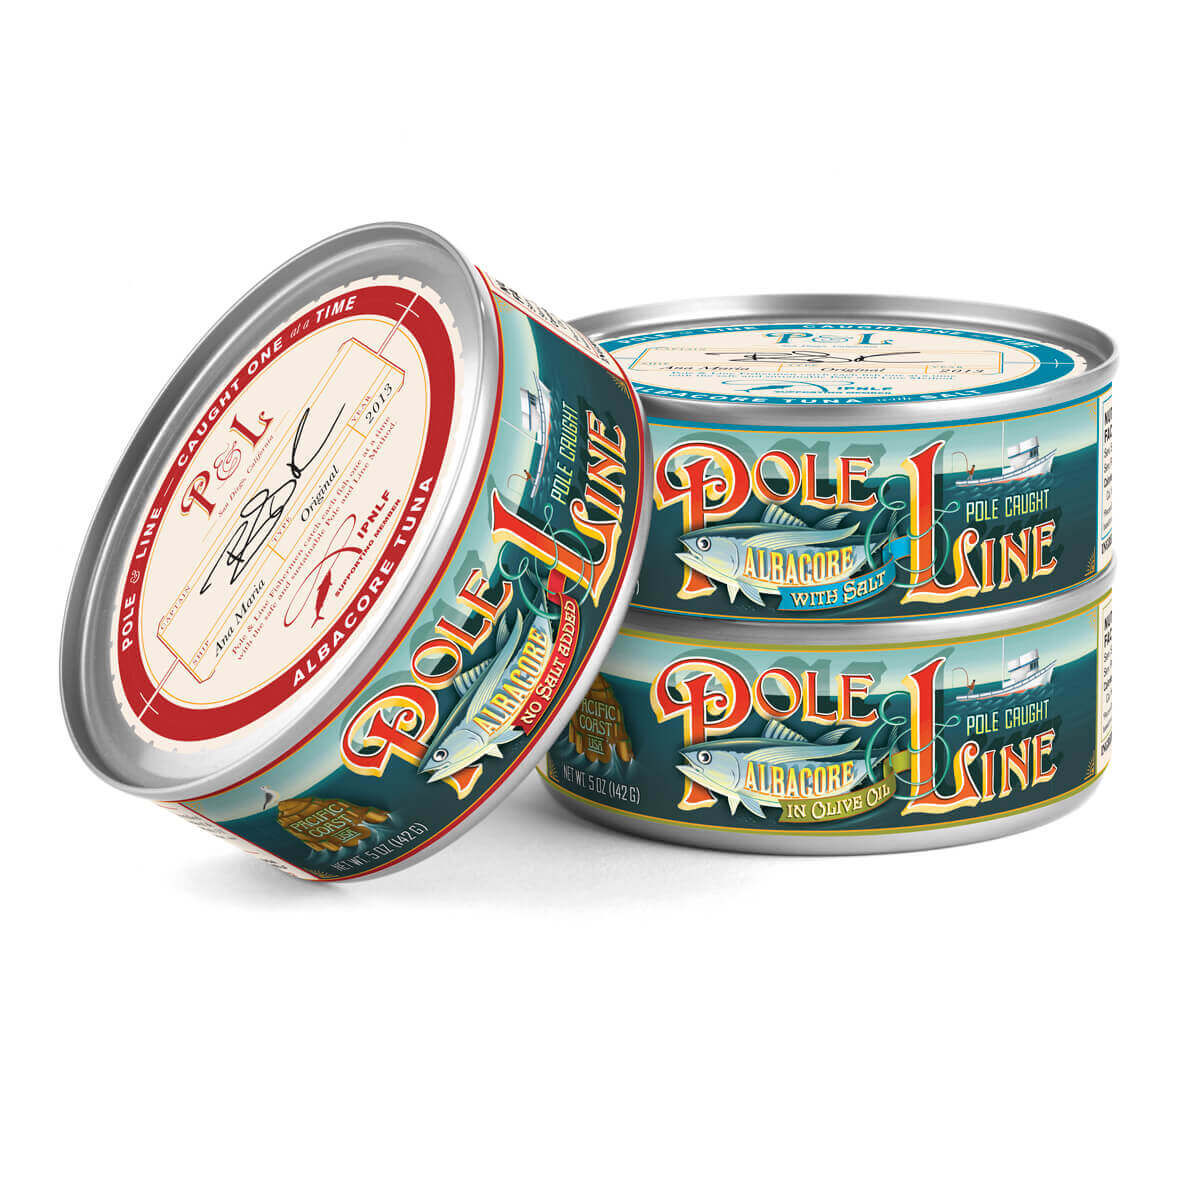 Pole & Line Tuna Packaging Hero Image